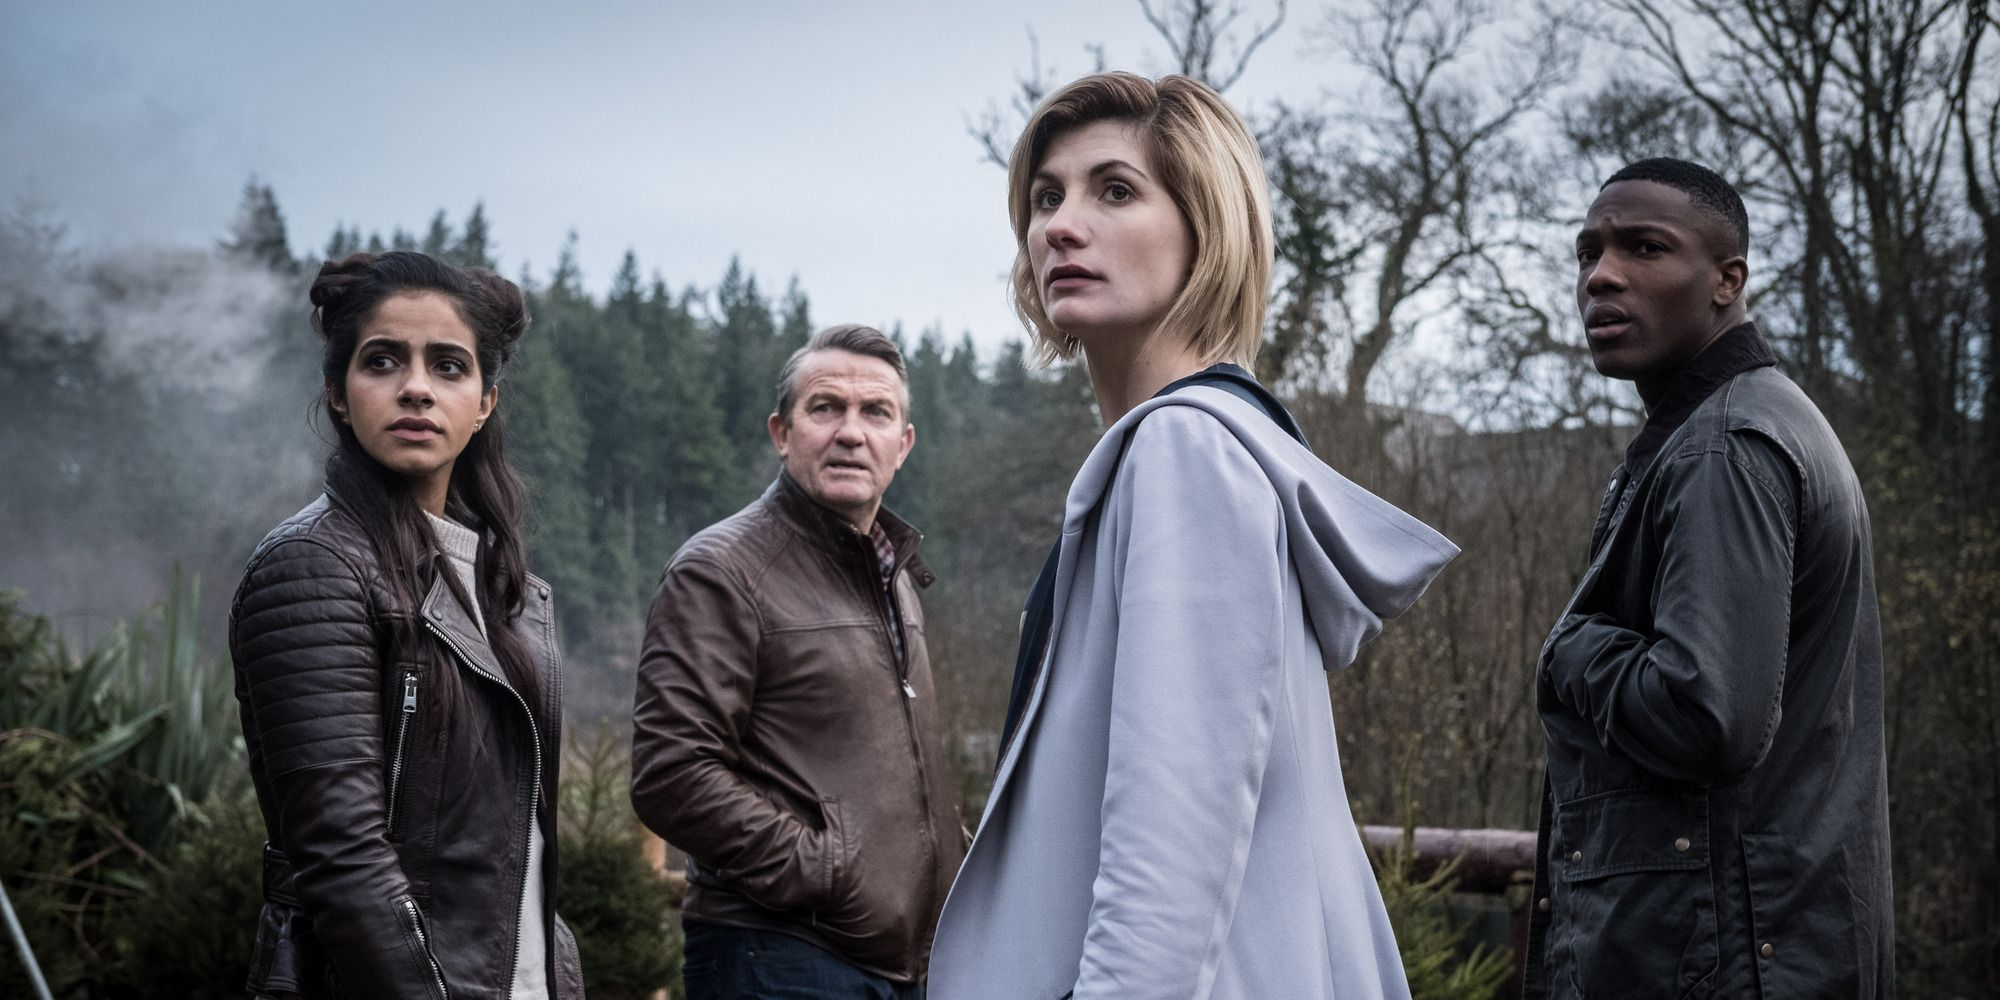 Doctor Who series 11 with Jodie Whittaker (the Doctor), Bradley Walsh (Graham), Tosin Cole (Ryan) and Mandip Gill (Yaz)